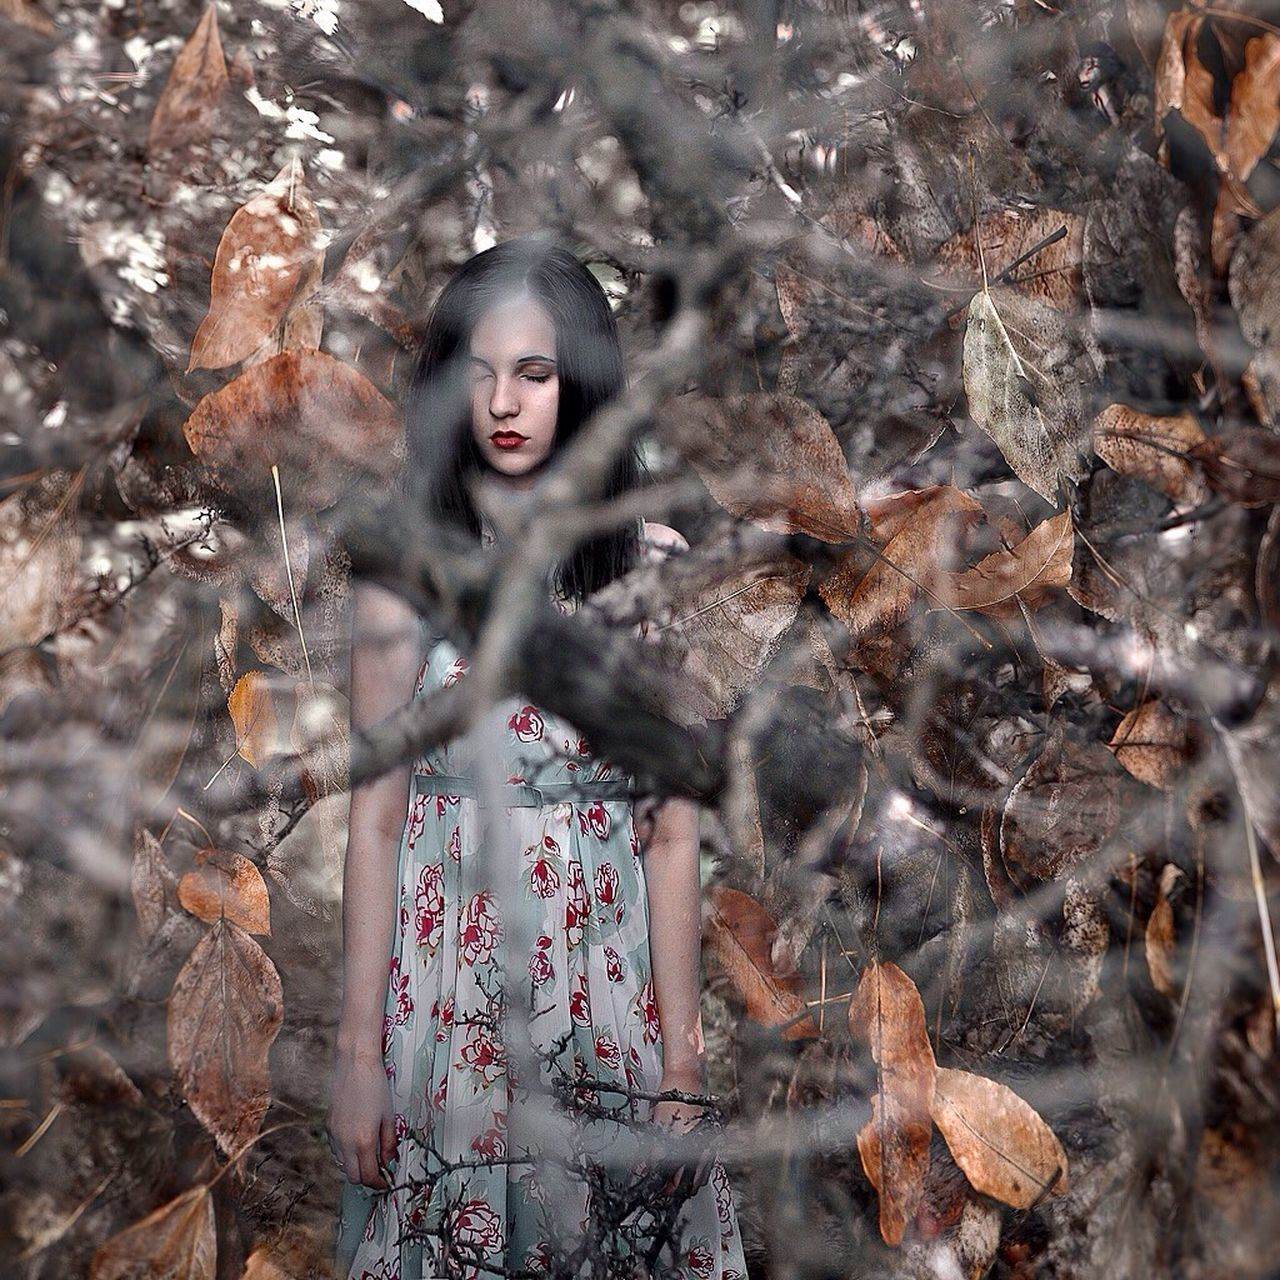 Autumn Autumn Colors Autumn Leaves One Person Only Women Beauty Females Surreal Portrait Fashion Nature One Young Woman Only Look EyeEm Best Shots EyeEm Gallery Looking At Camera Portrait Of A Woman VSCO EyeEm Best Edits Eyeemphotography Eyeemphoto EyeEm Portrait Of A Girl One Woman Only Photo